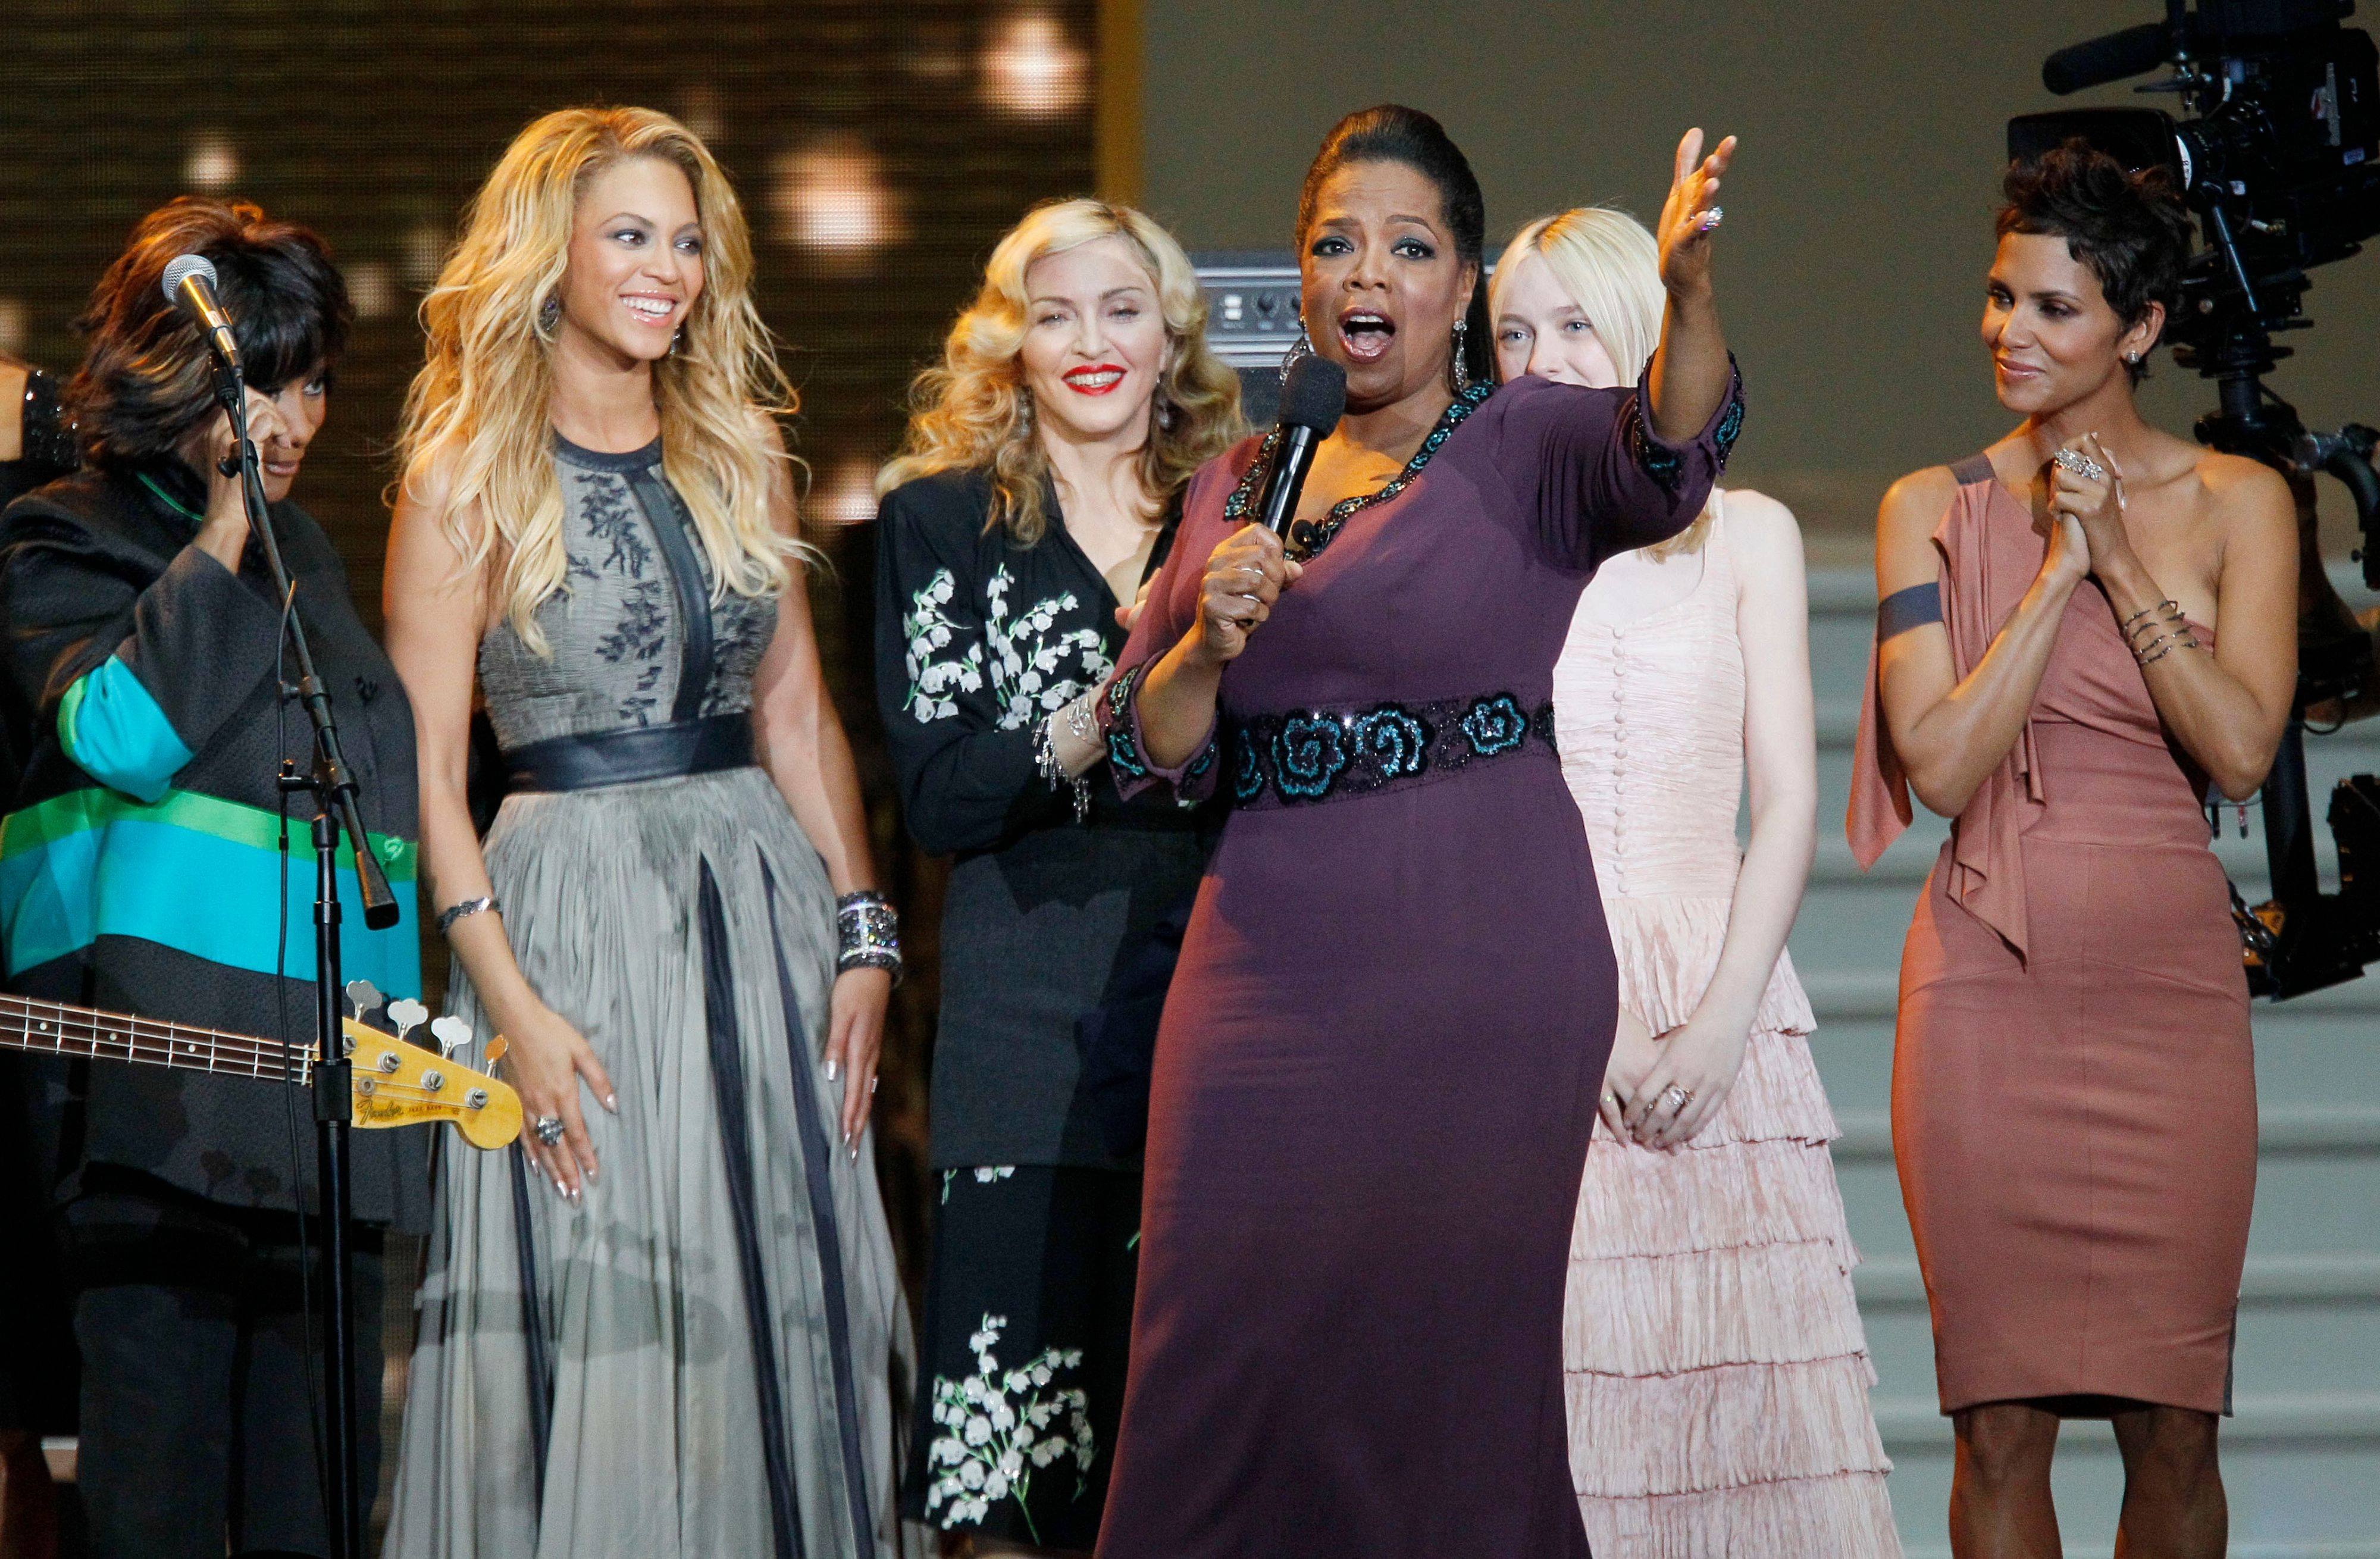 Oprah Winfrey speaks as she is surrounded by, from left, Patti LaBelle, BeyoncÈ, Madonna, Dakota Fanning and Halle Berry.